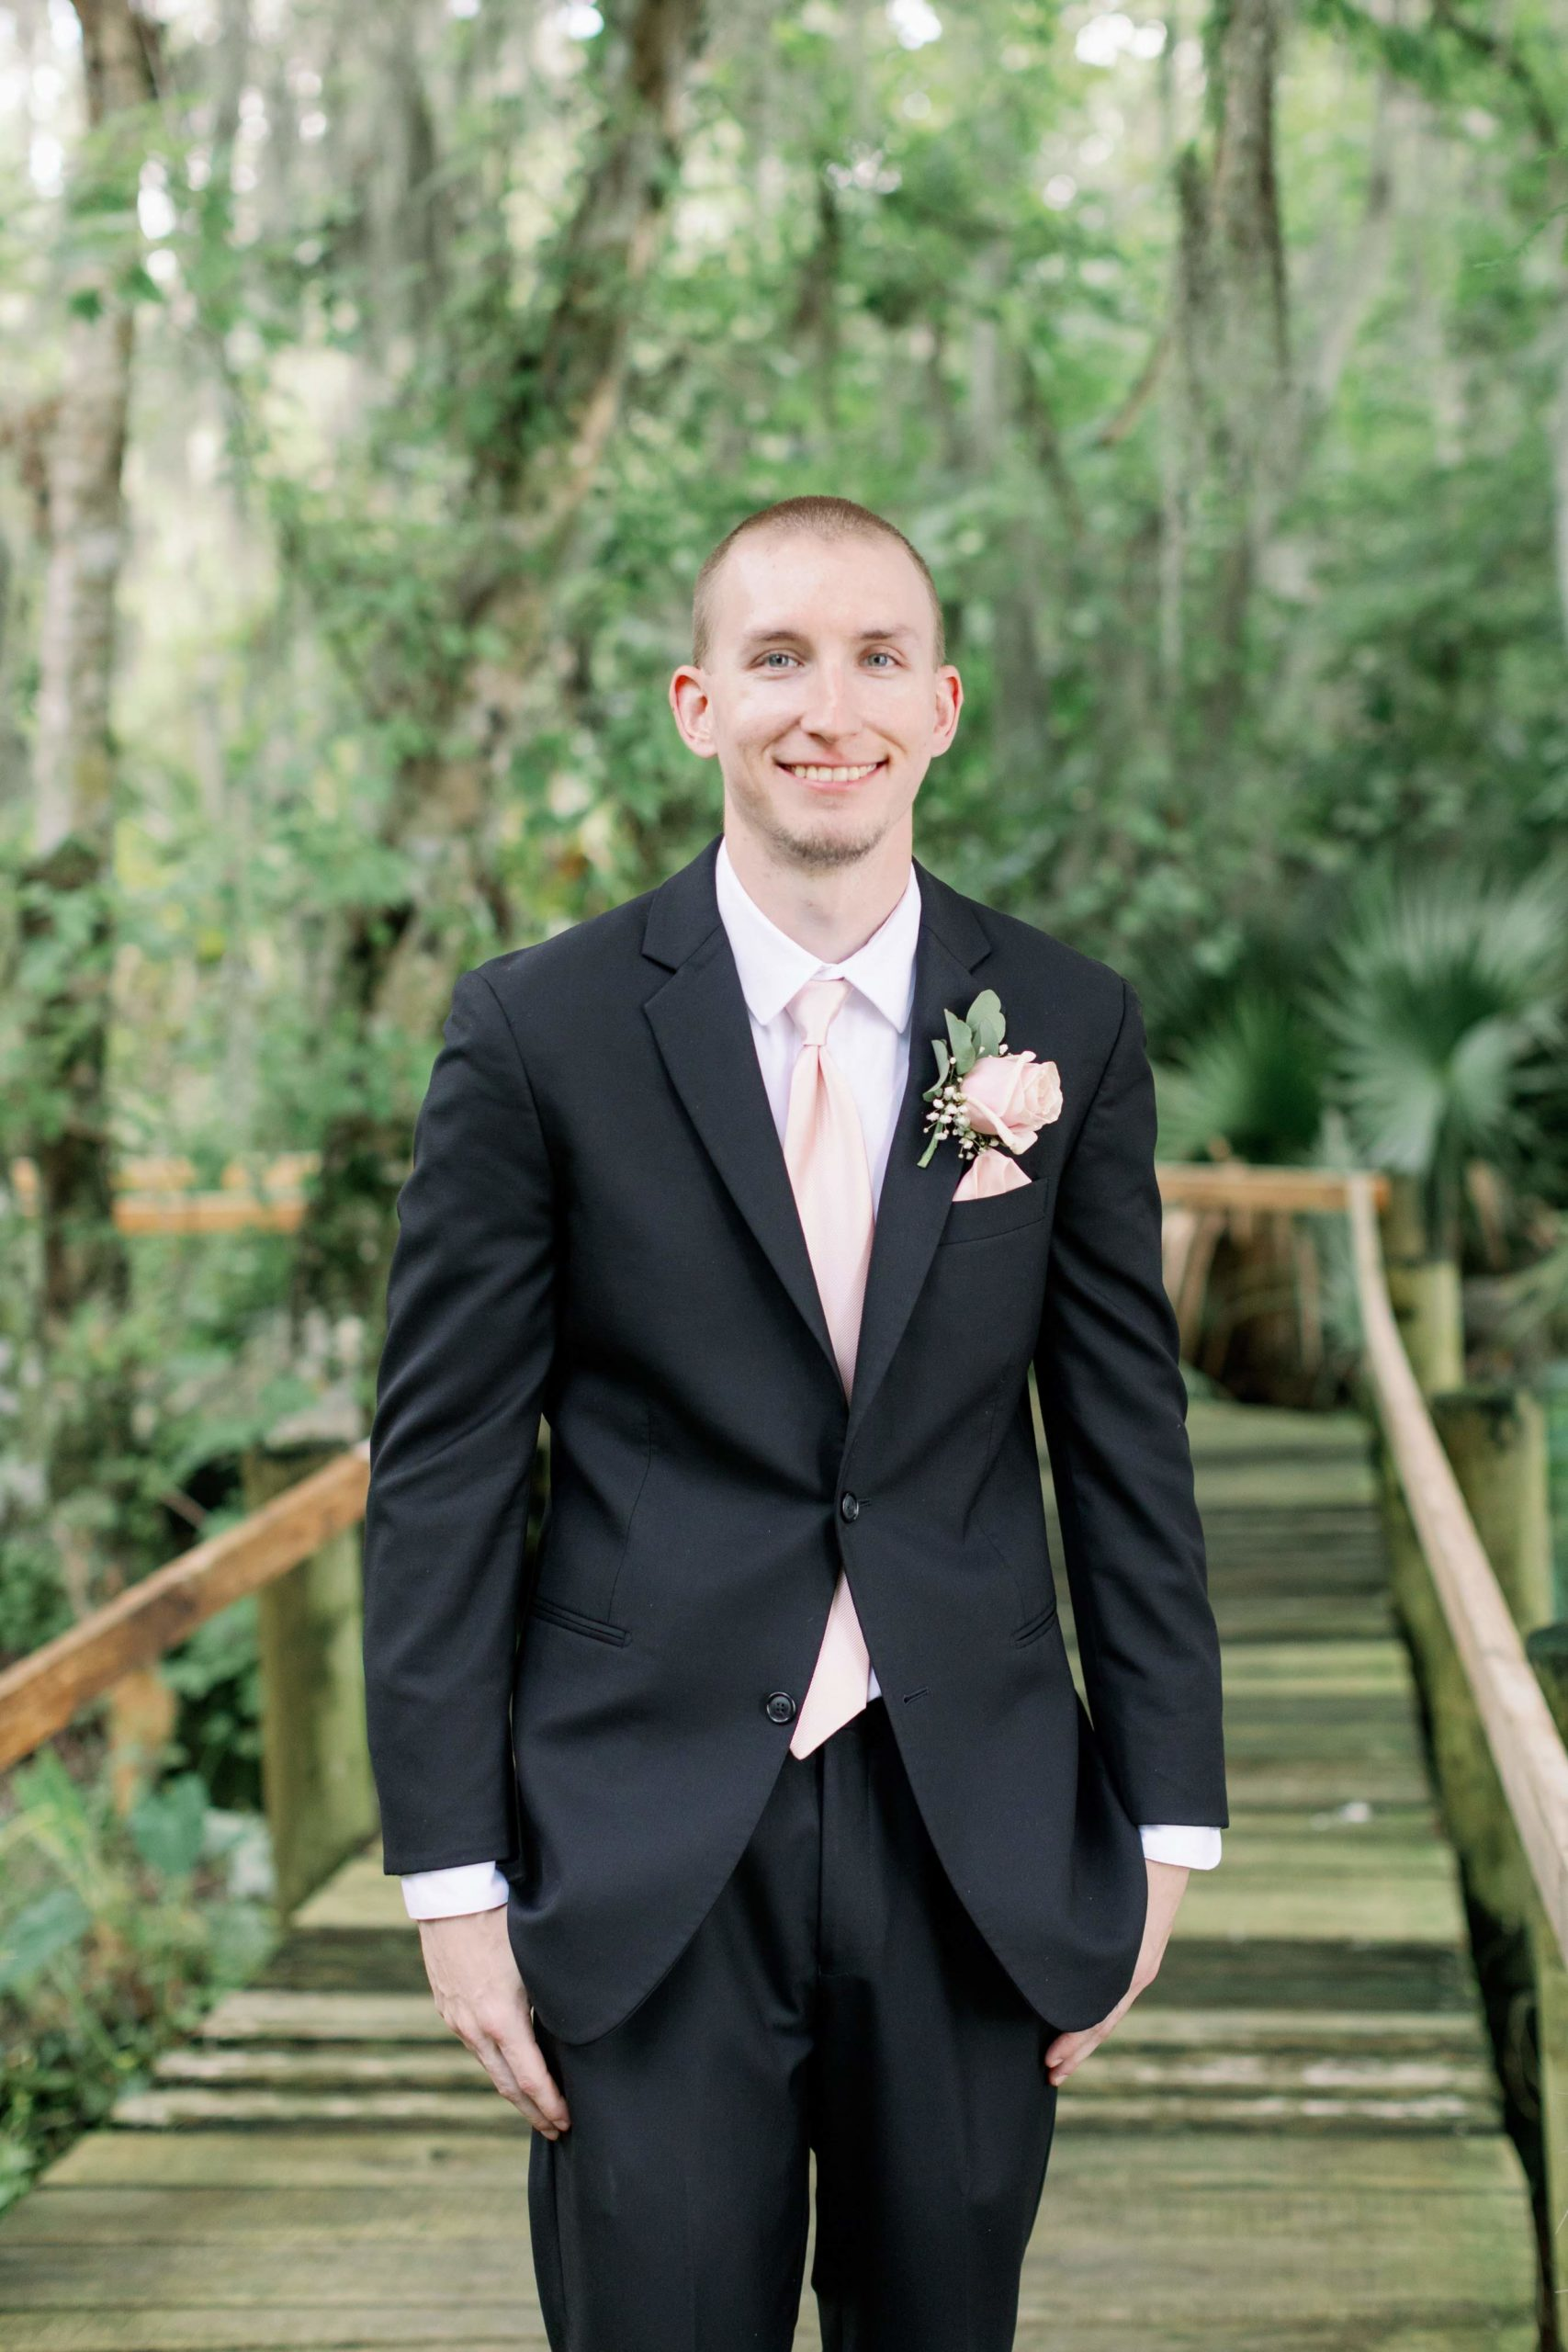 Groom by himself on wooden boardwalk